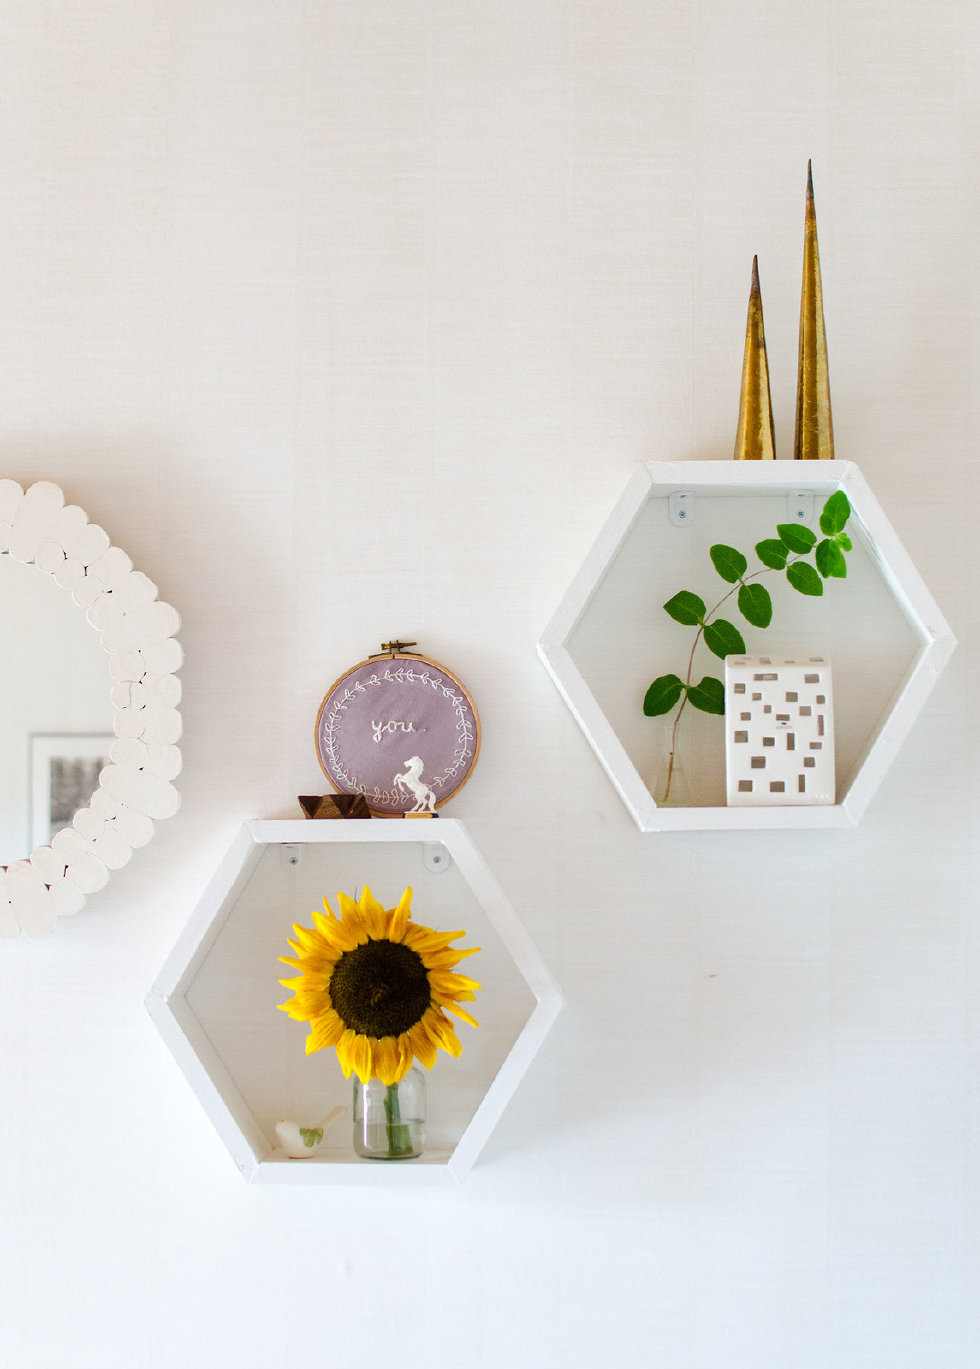 60 ways to make diy shelves a part of your homes dcor honeycomb shelves for wall amipublicfo Gallery